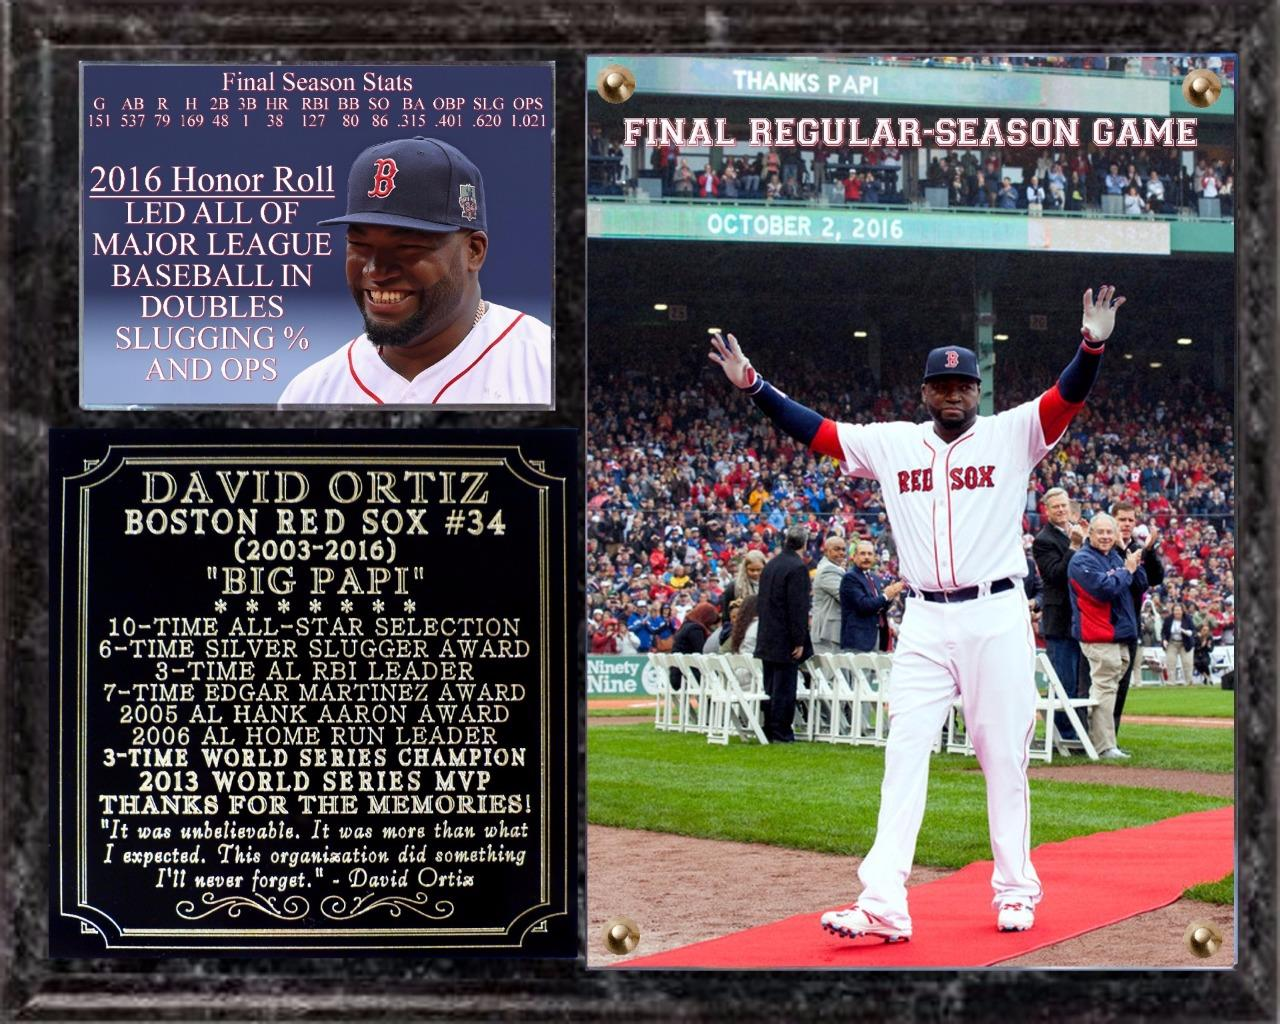 David Ortiz Final Regular-Season Game Photo Plaque 10-2 ...